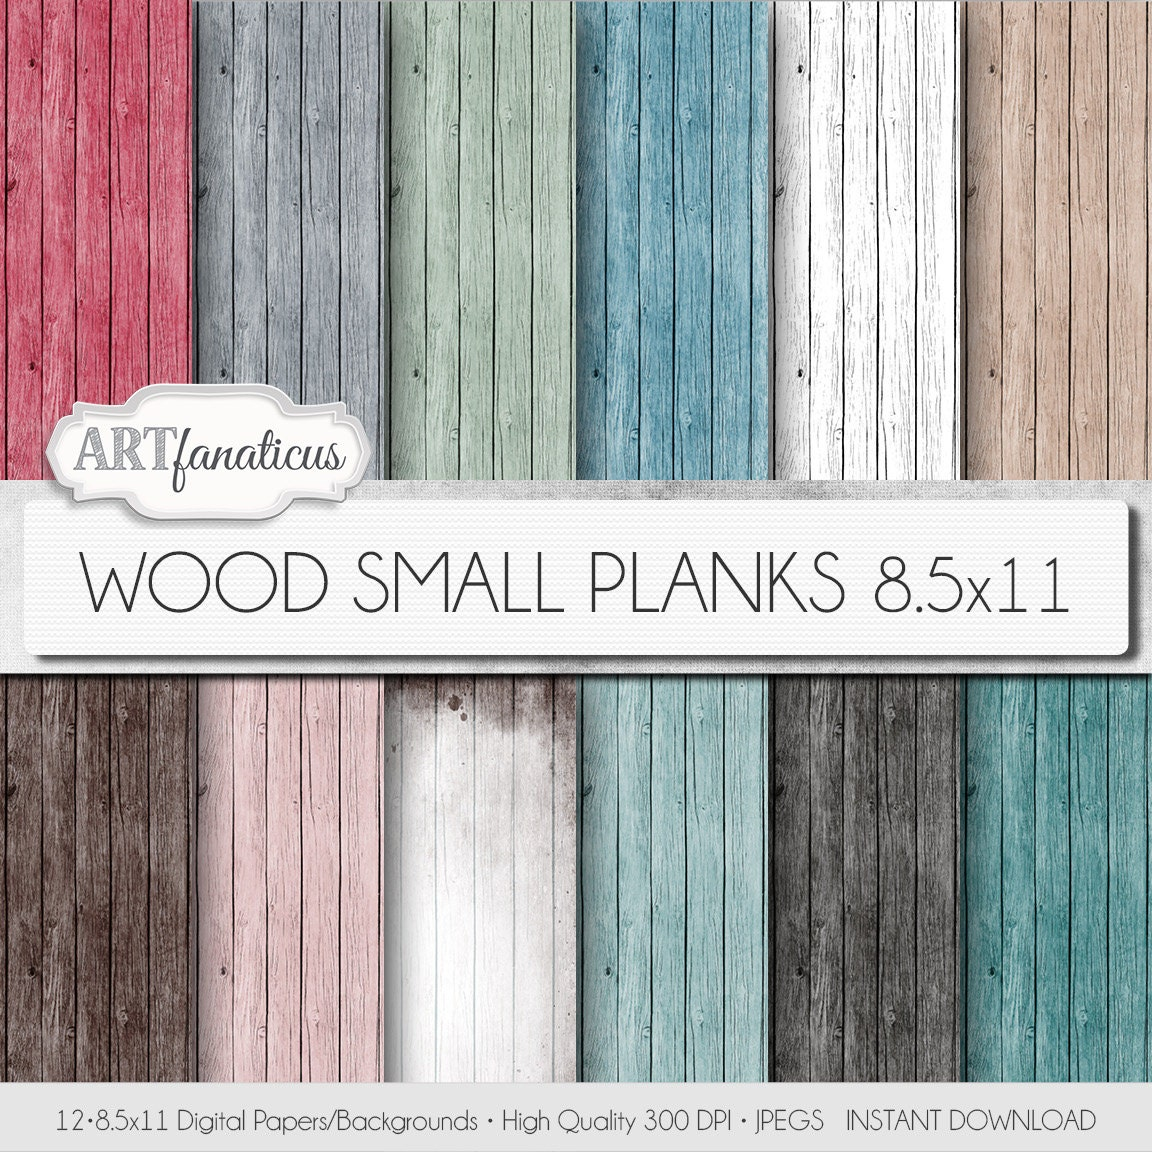 Scrapbook paper wood grain - Digital Wood Papers Wood Small Planks Textured Digital Background In Mint Green Wood Grain Aqua Pink Red White Wood Wood Background